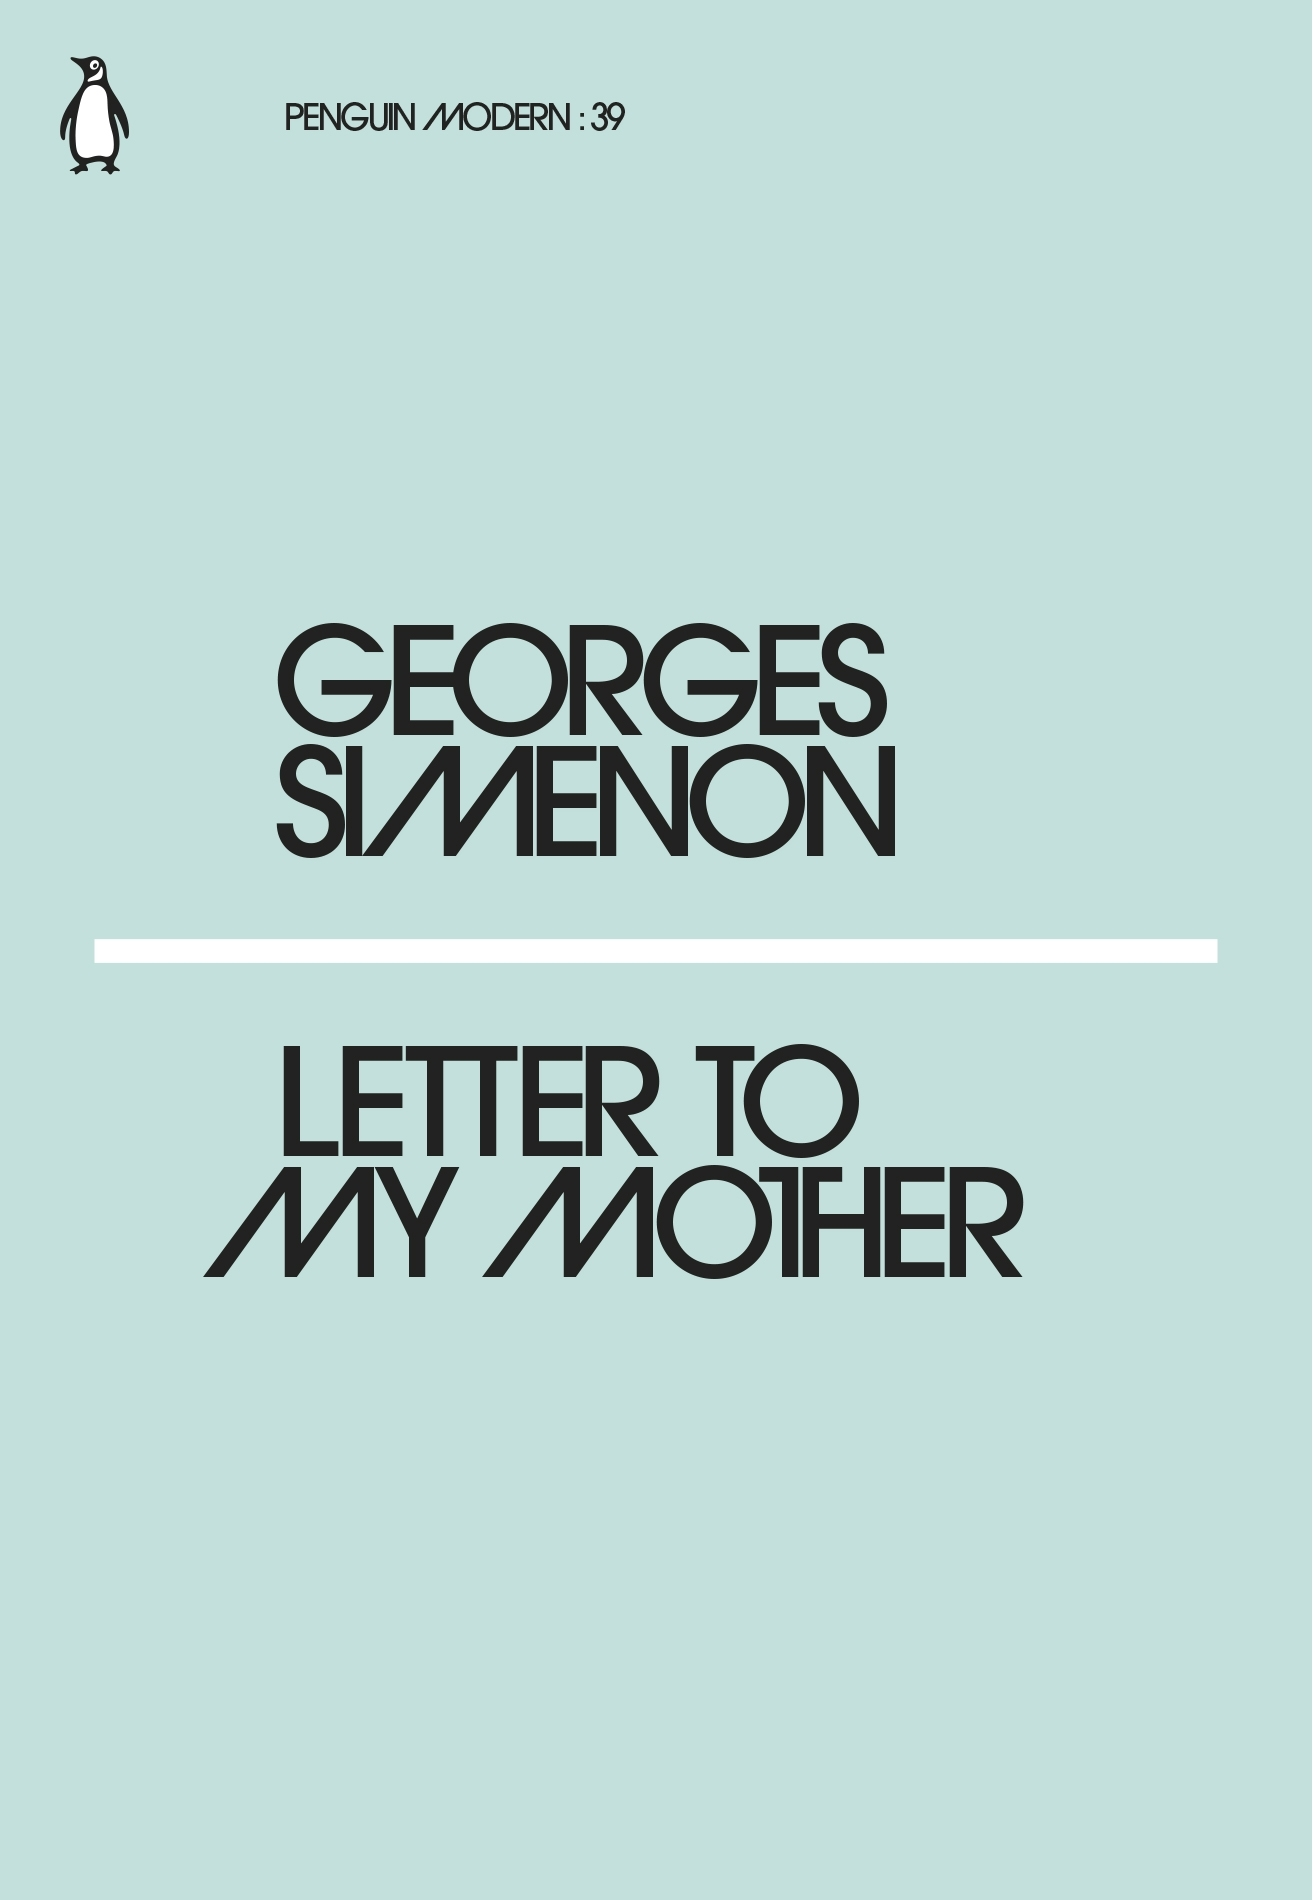 Letter to My Mother by Georges Simenon Penguin Books Australia